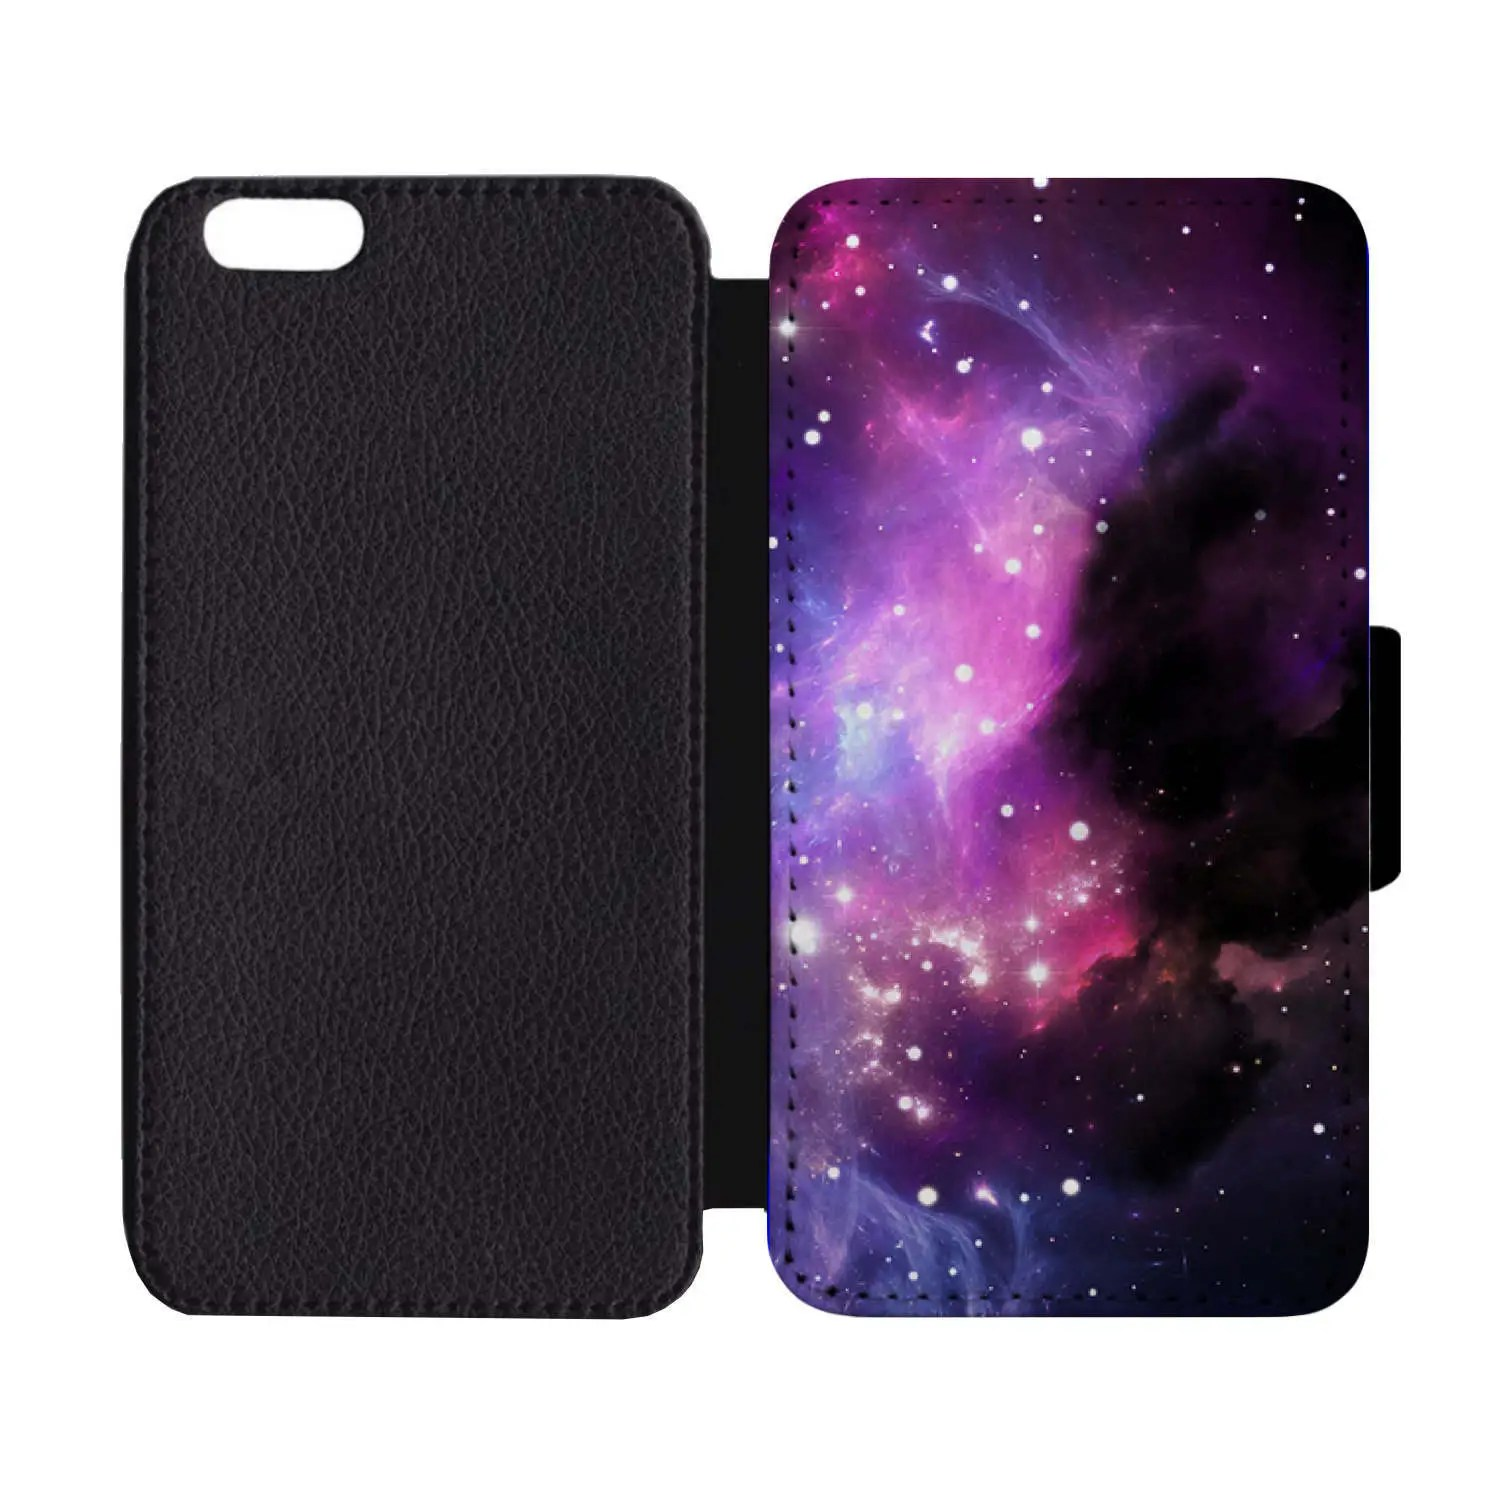 galaxy purple space stars solar system print pattern black leather